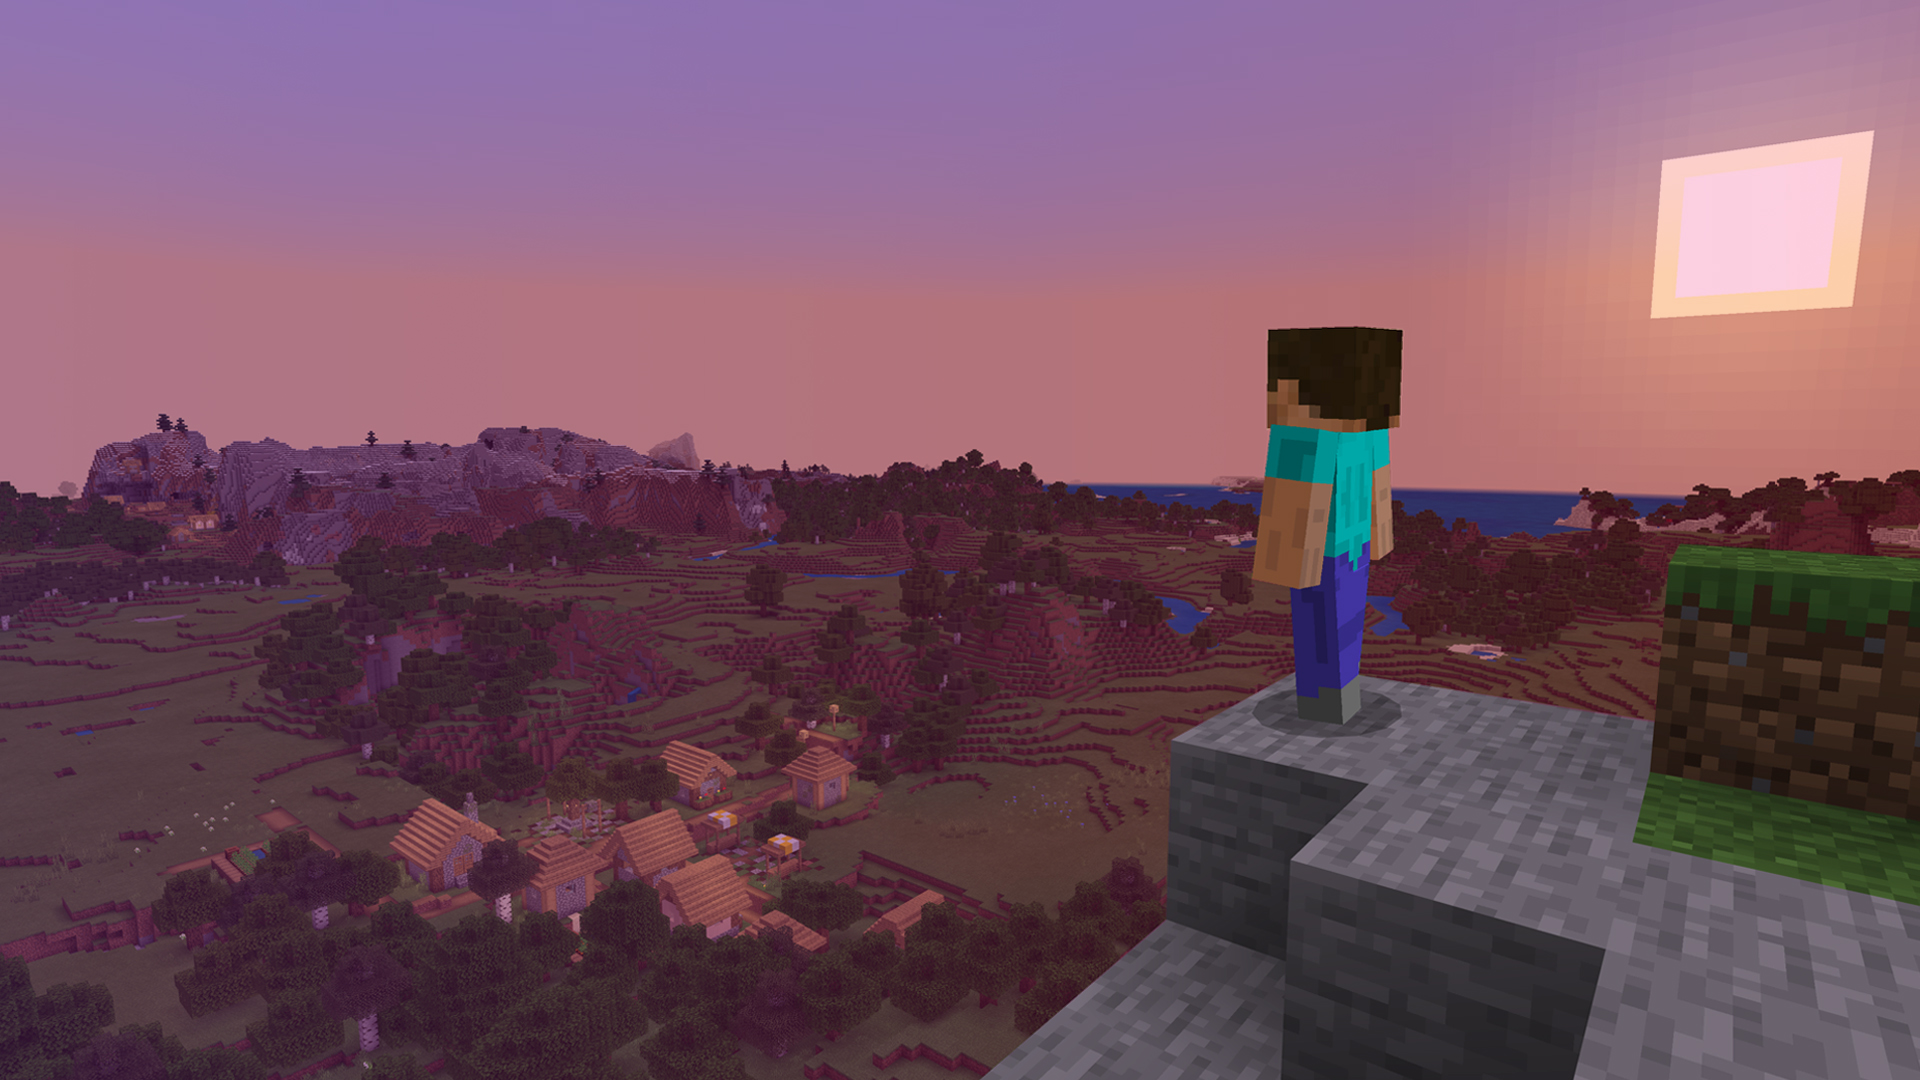 Minecraft Steve standing on a stone ledge as the sun sets behind him in a purple sky.